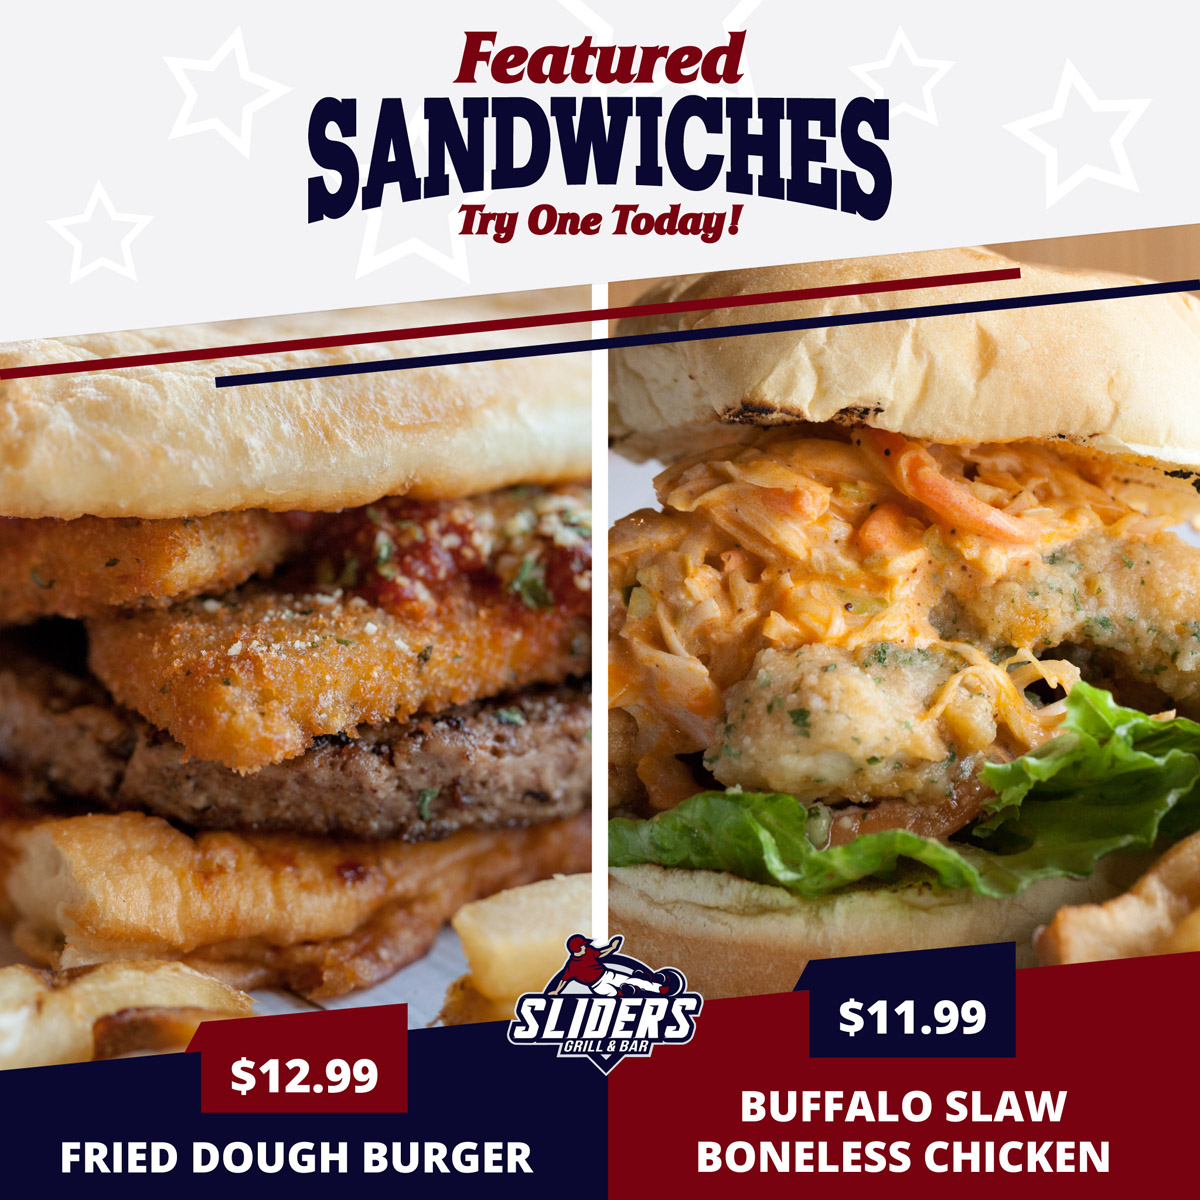 Featured Sandwiches